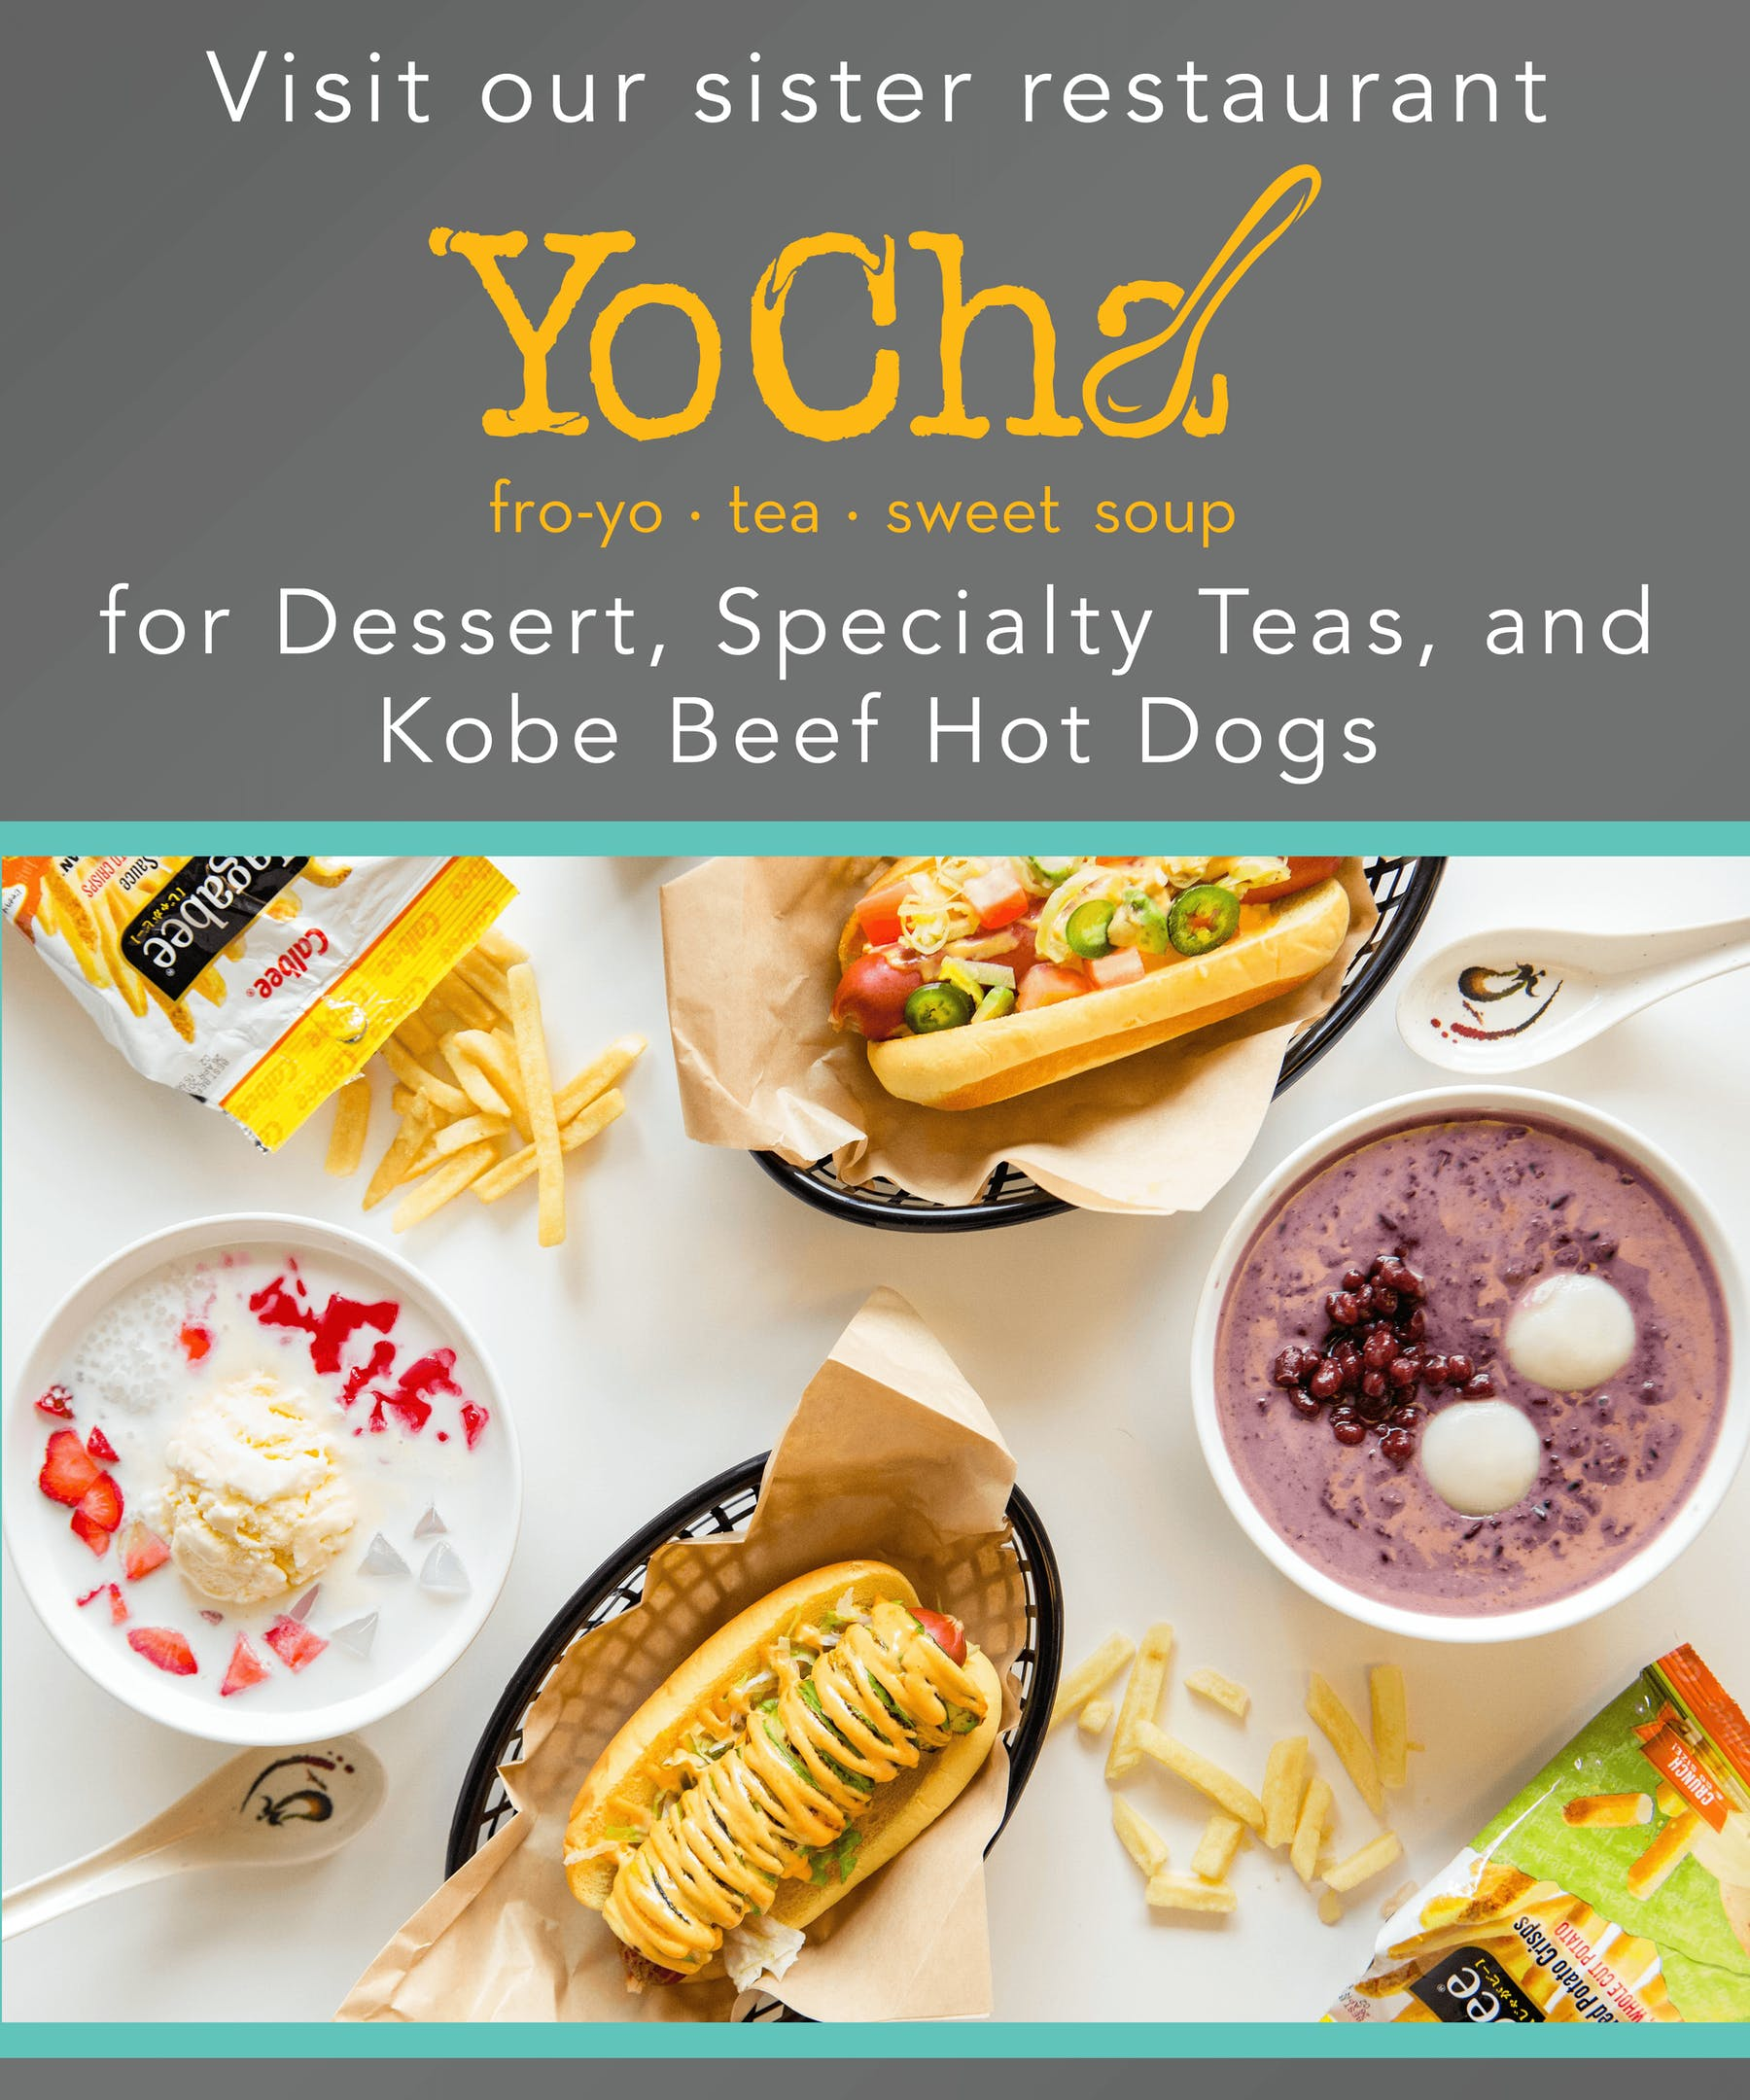 Yocha dessert and hot dogs